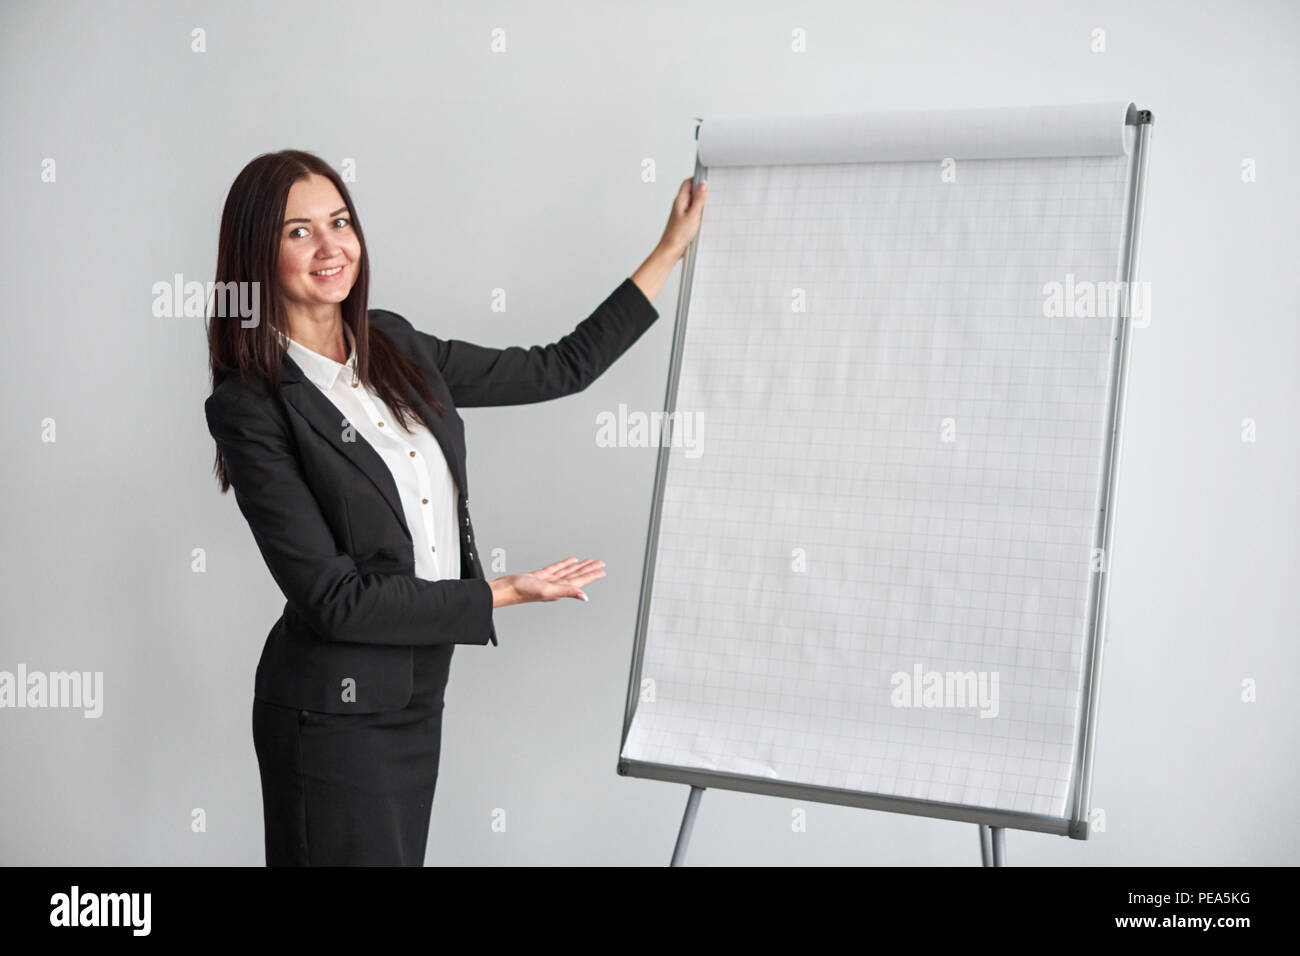 Portrait of young smiling businesswoman standing by flipchart in office - Stock Image